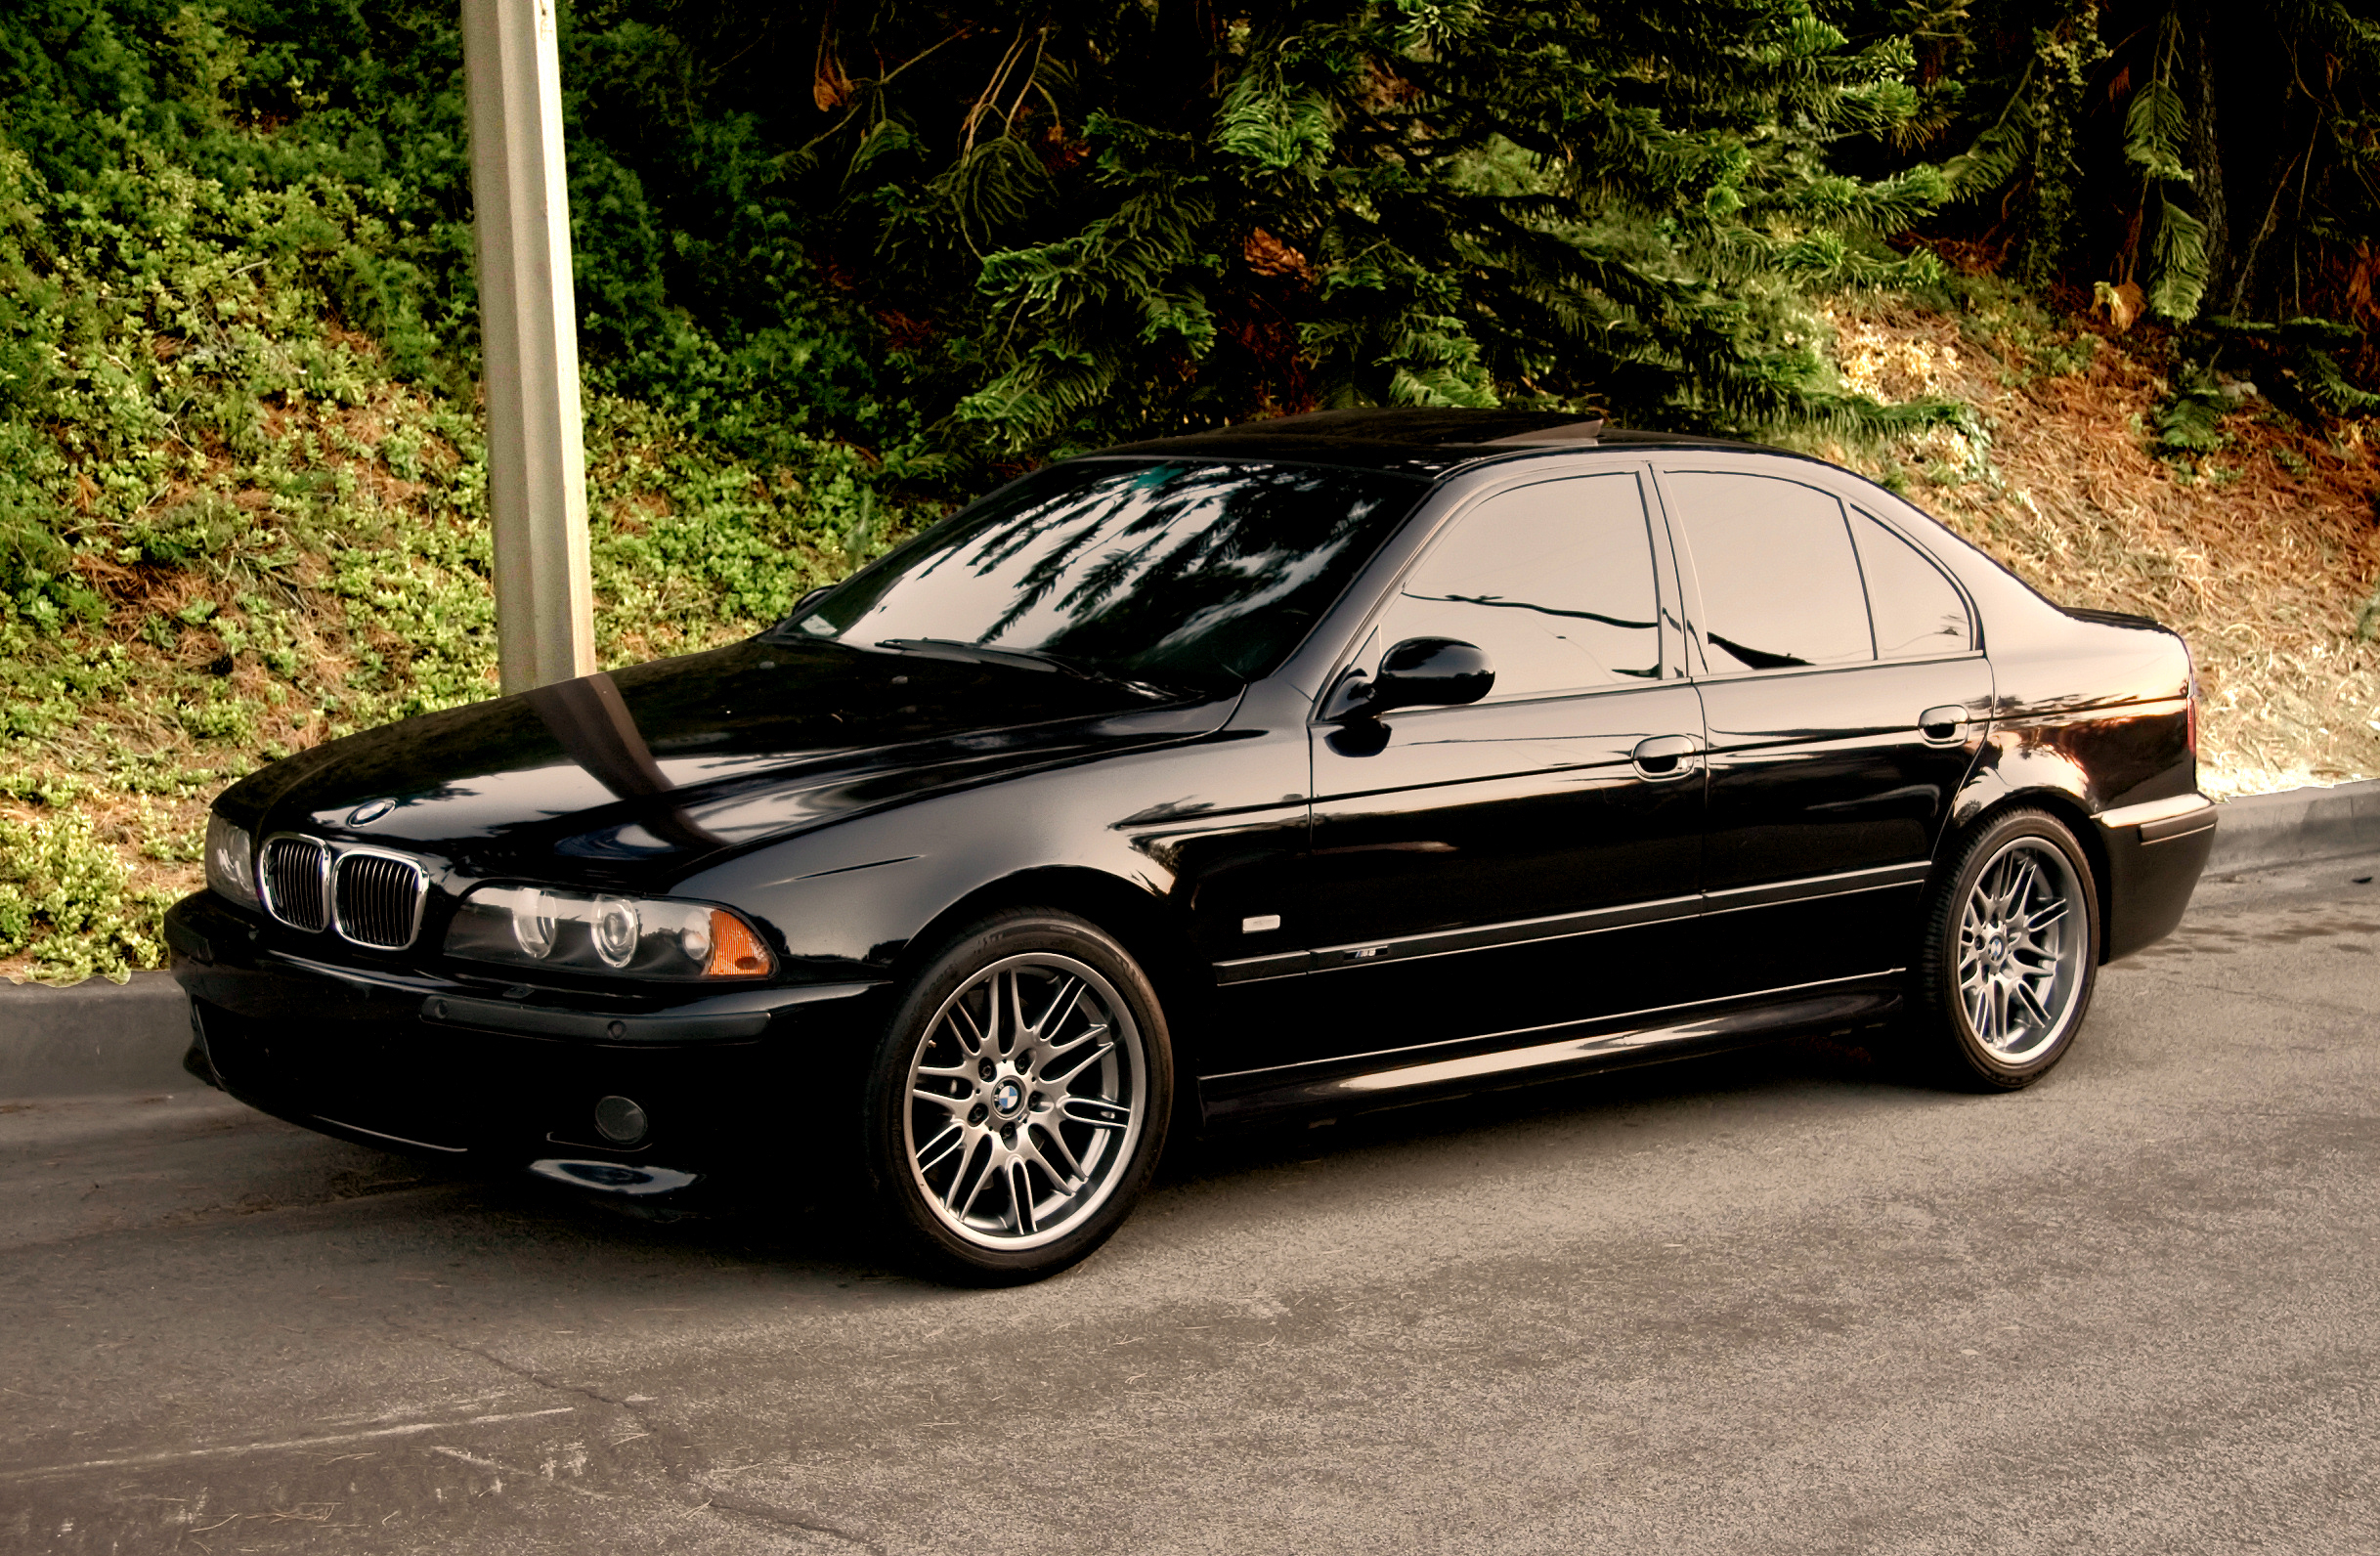 bmw e39 wallpapers images photos pictures backgrounds. Black Bedroom Furniture Sets. Home Design Ideas